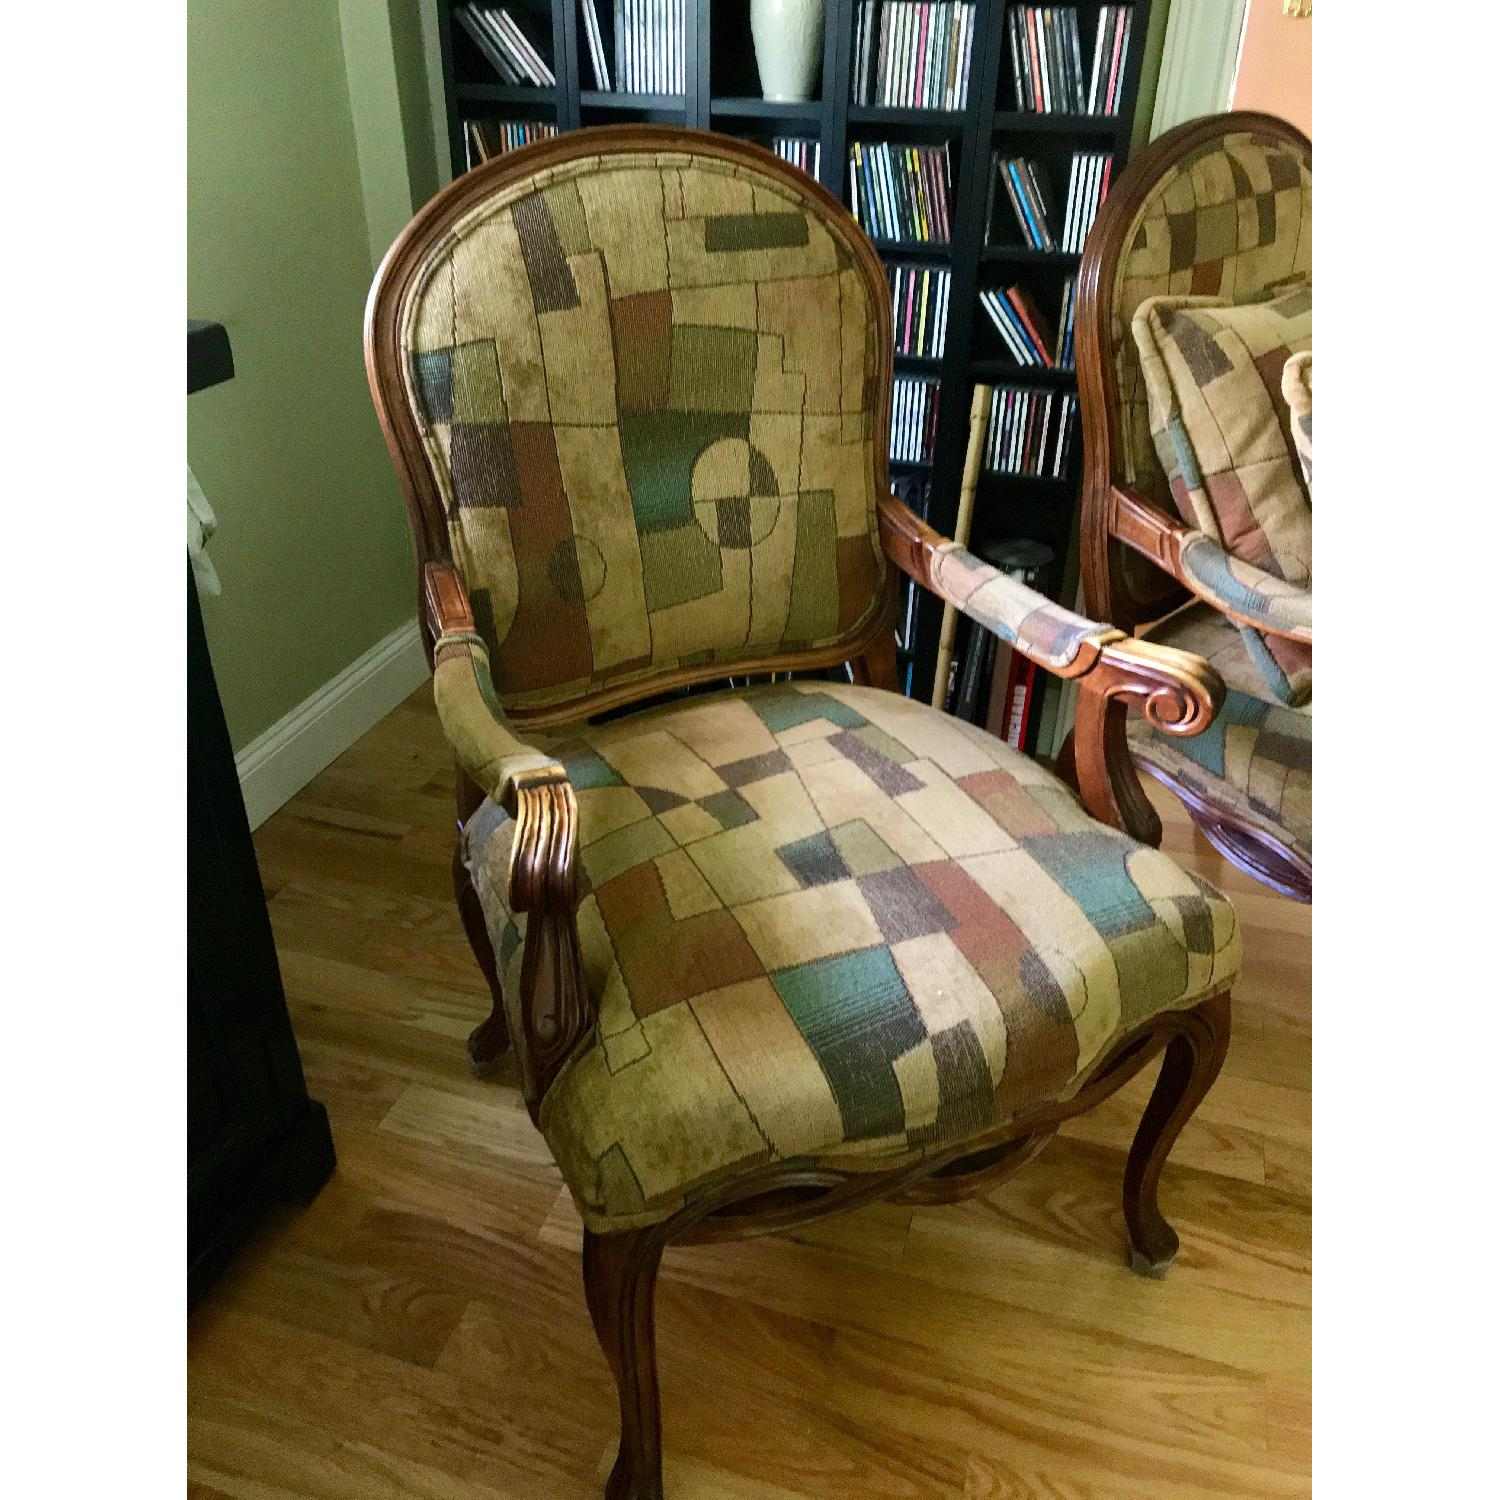 Bassett Contemporary Accent Chairs - image-3